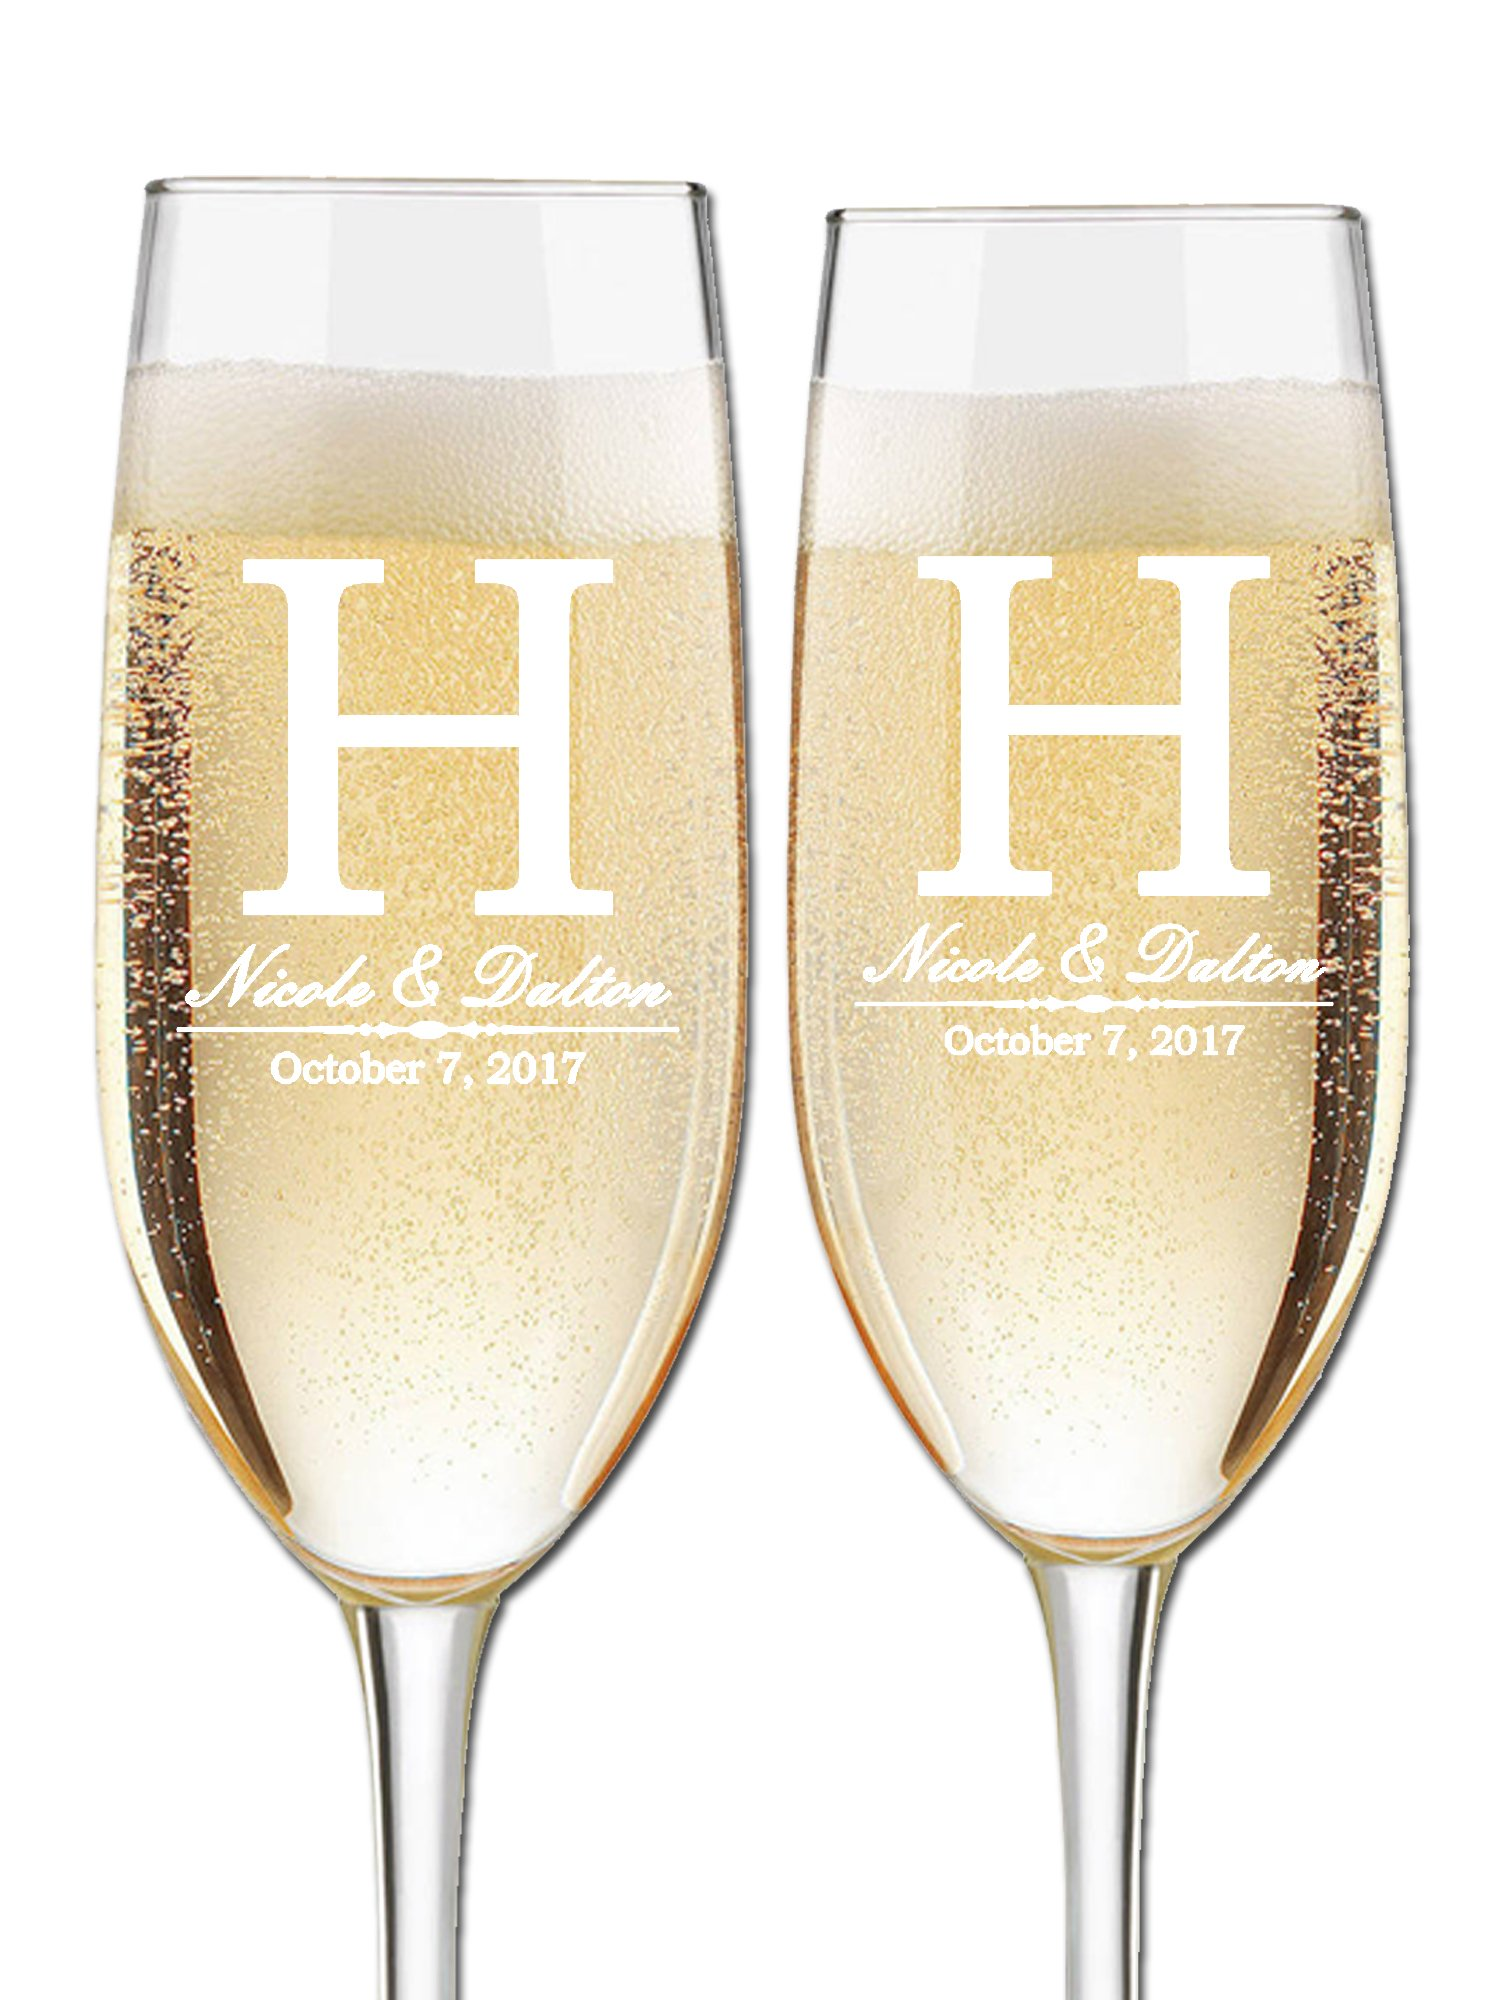 Custom Wedding Champagne Flutes- Set of 2 –Bride and Groom First Names, Last Name Initial Monogram and Wedding Date – Personalized for Bride and Groom - Customized Engraved Wedding Gift